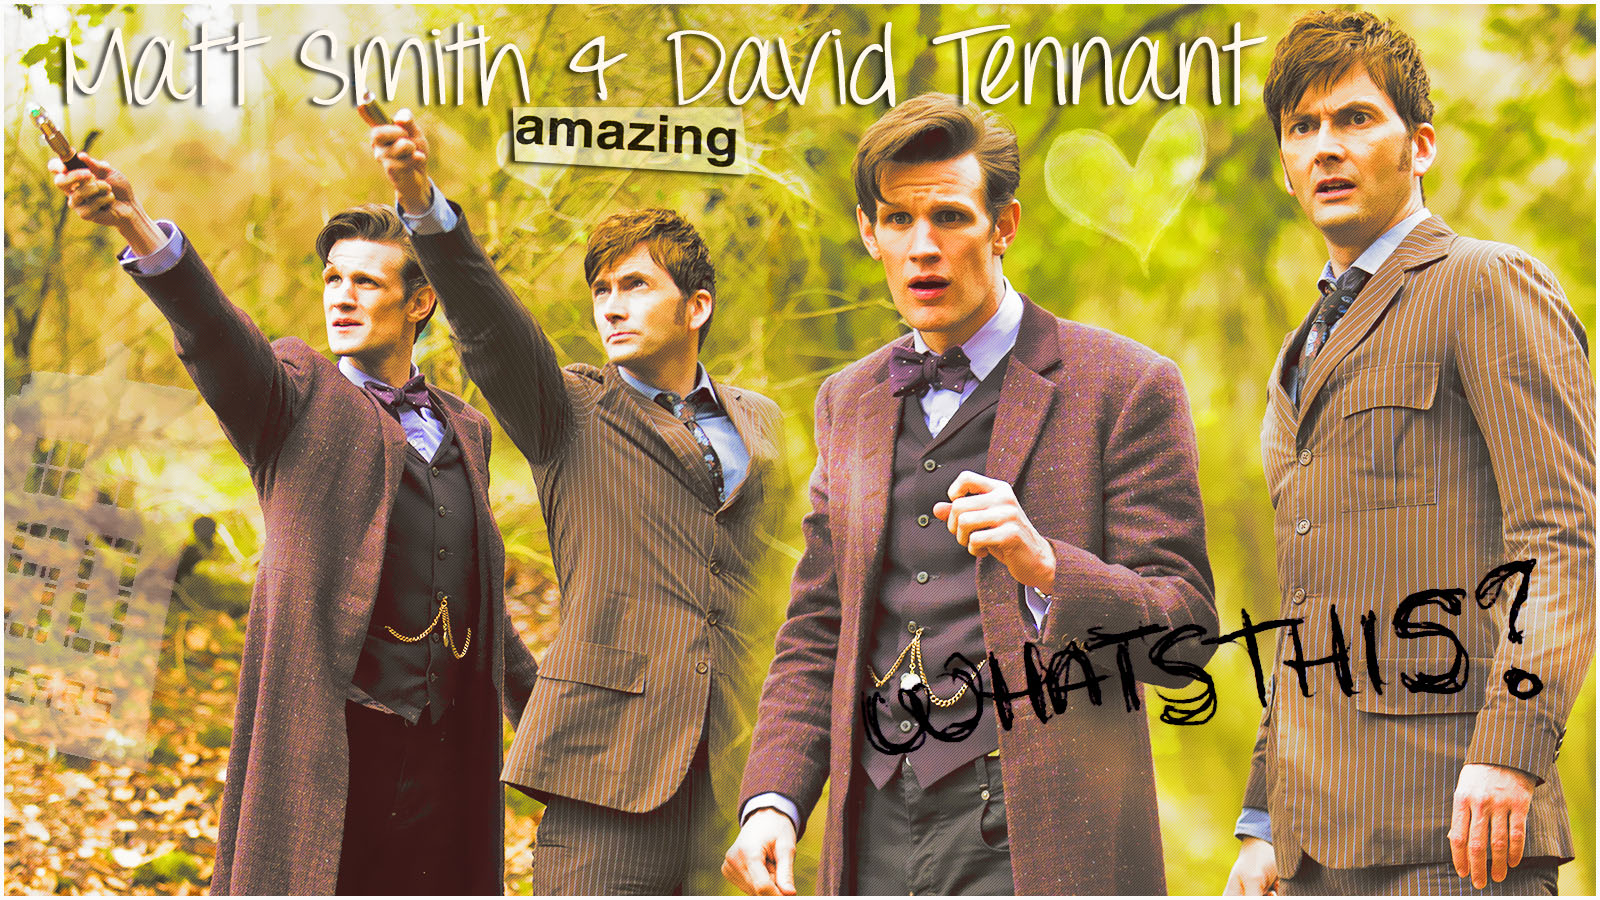 Doctor Who Matt Smith And David Tennant By Anthony258 On Deviantart